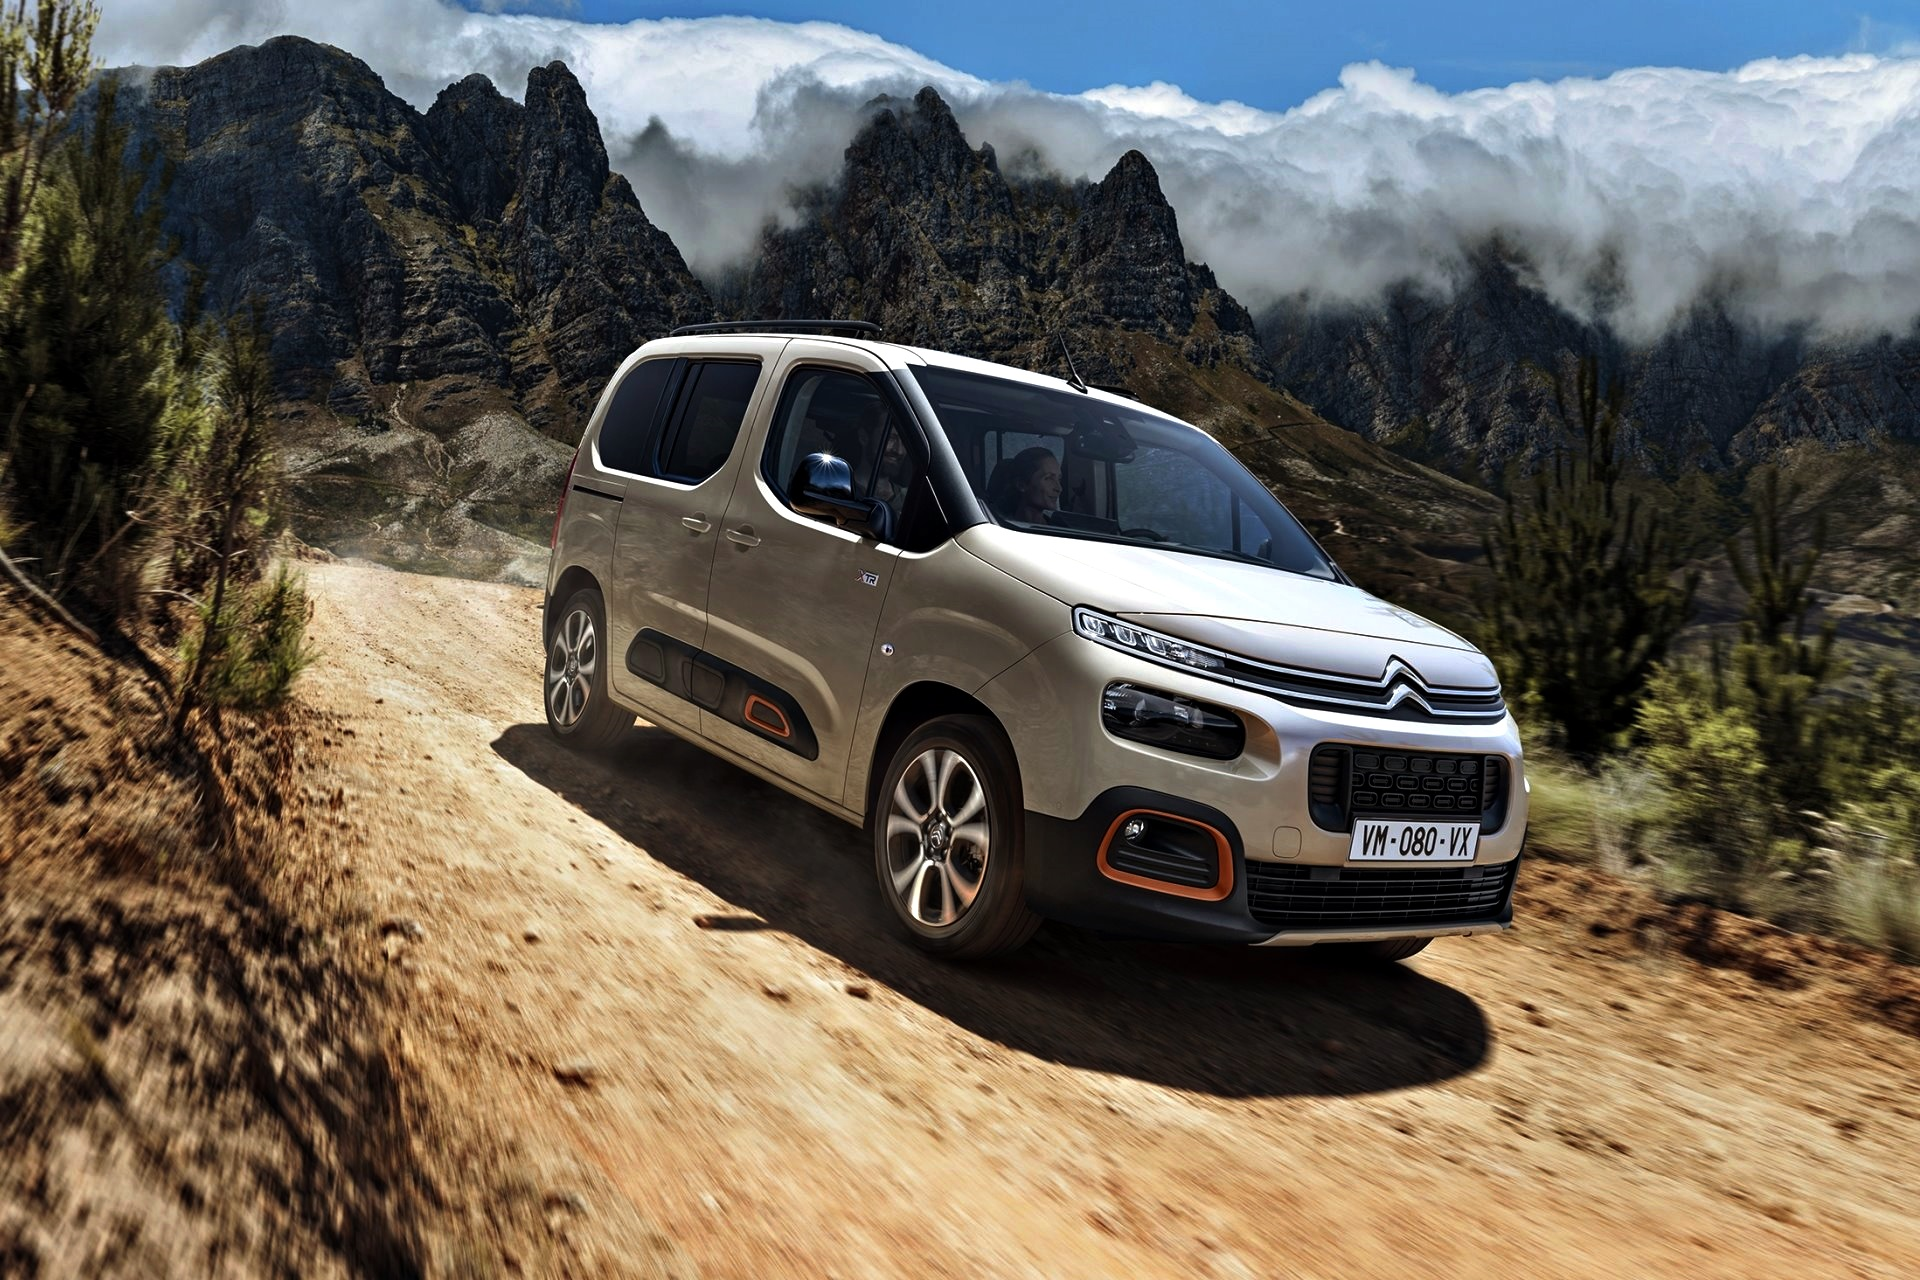 Citroen Berlingo 2021 (2)